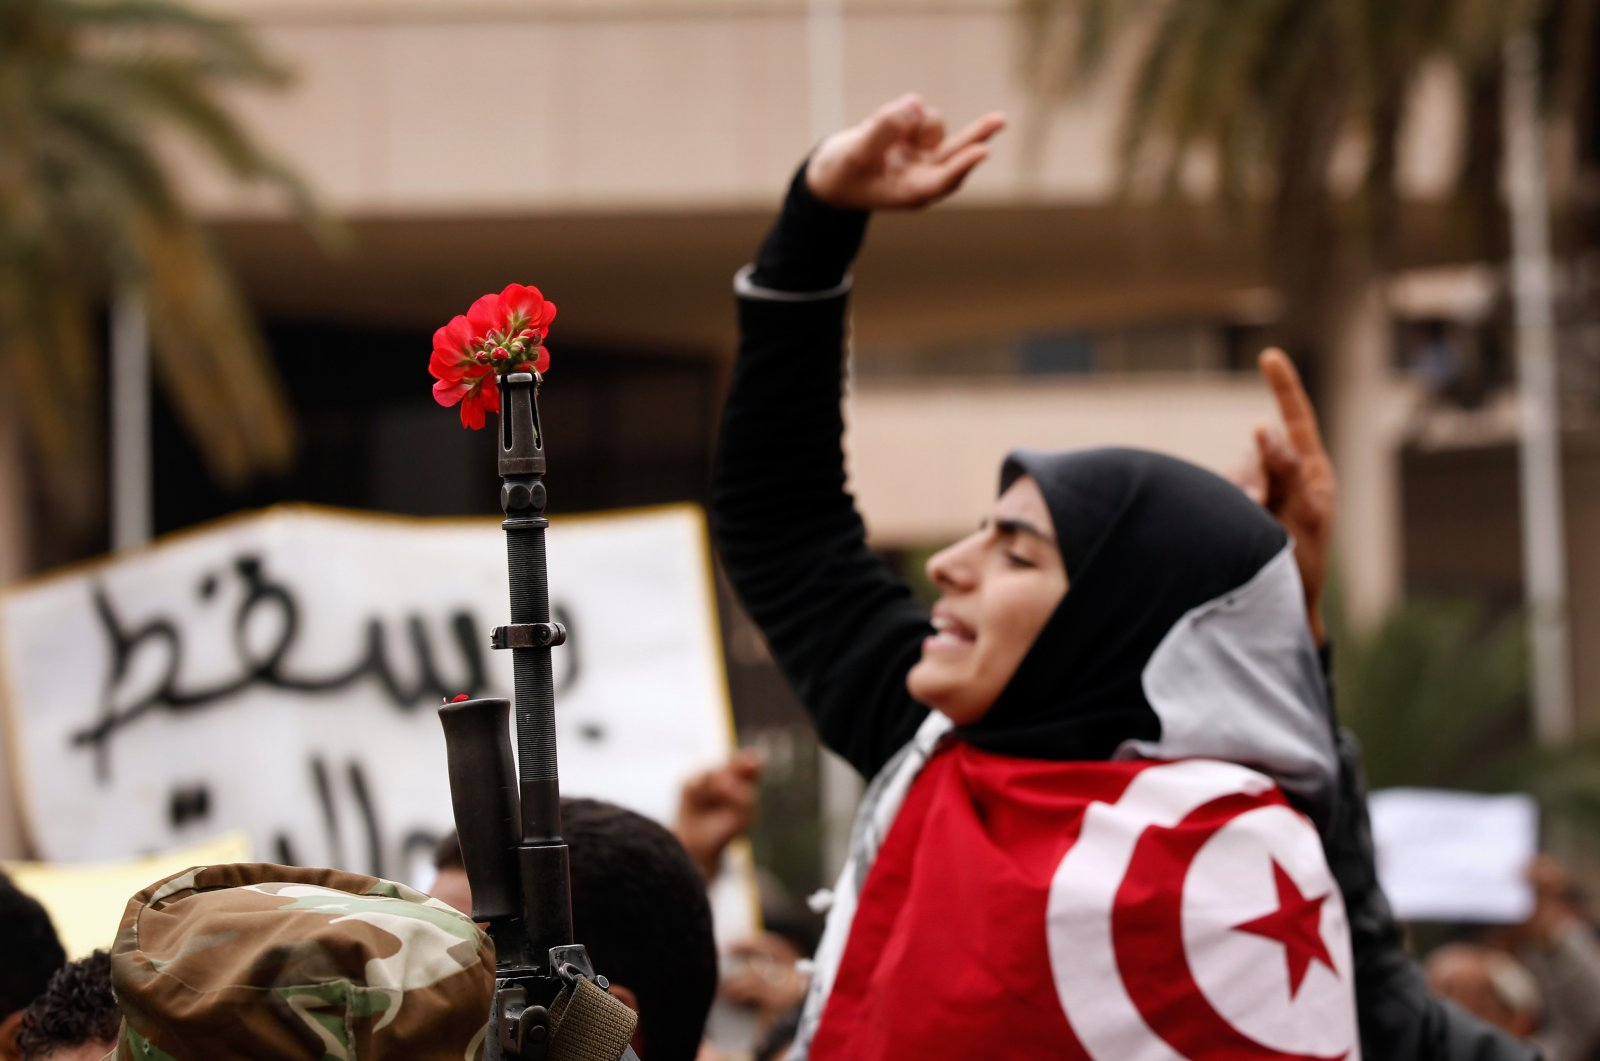 A Tunisian demonstrator makes a peace sign next to a flower in the barrel of a gun during a mass protest for changes in Tunisia's new government, in Tunis, Tunisia, Jan. 20, 2011. (Photo by Getty Images)